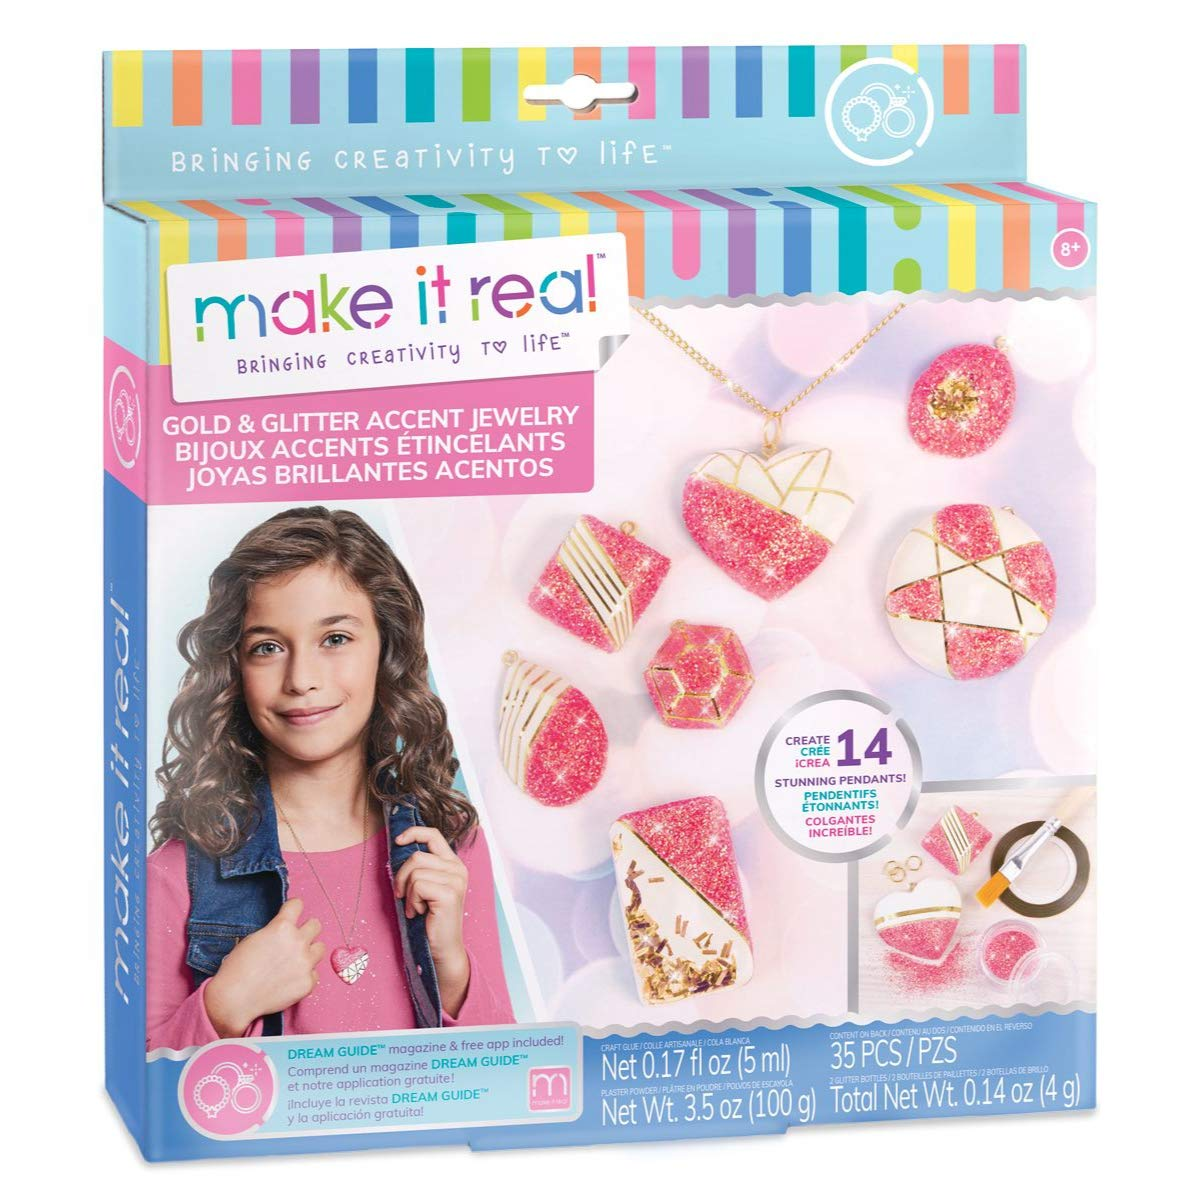 Make It Real - Gold and Glitter Accent Jewelry. DIY Necklace and Pendant Making Kit for Girls. Arts and Crafts Kit Guides Kids to Create Unique Gold and Glitter Pendants for Necklaces